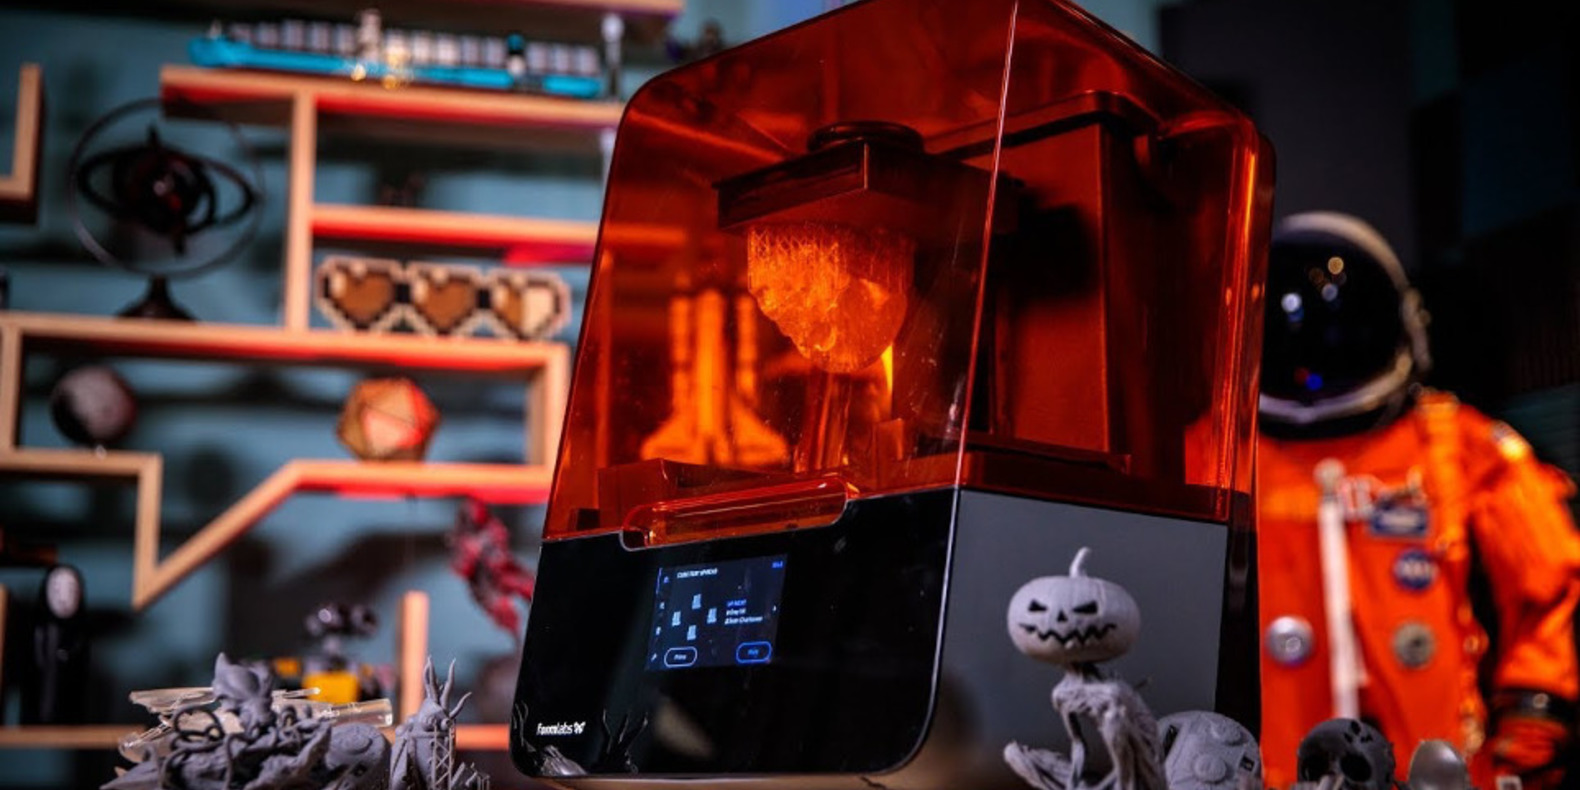 Need a 3D printer? Here are the top choices for home and work use